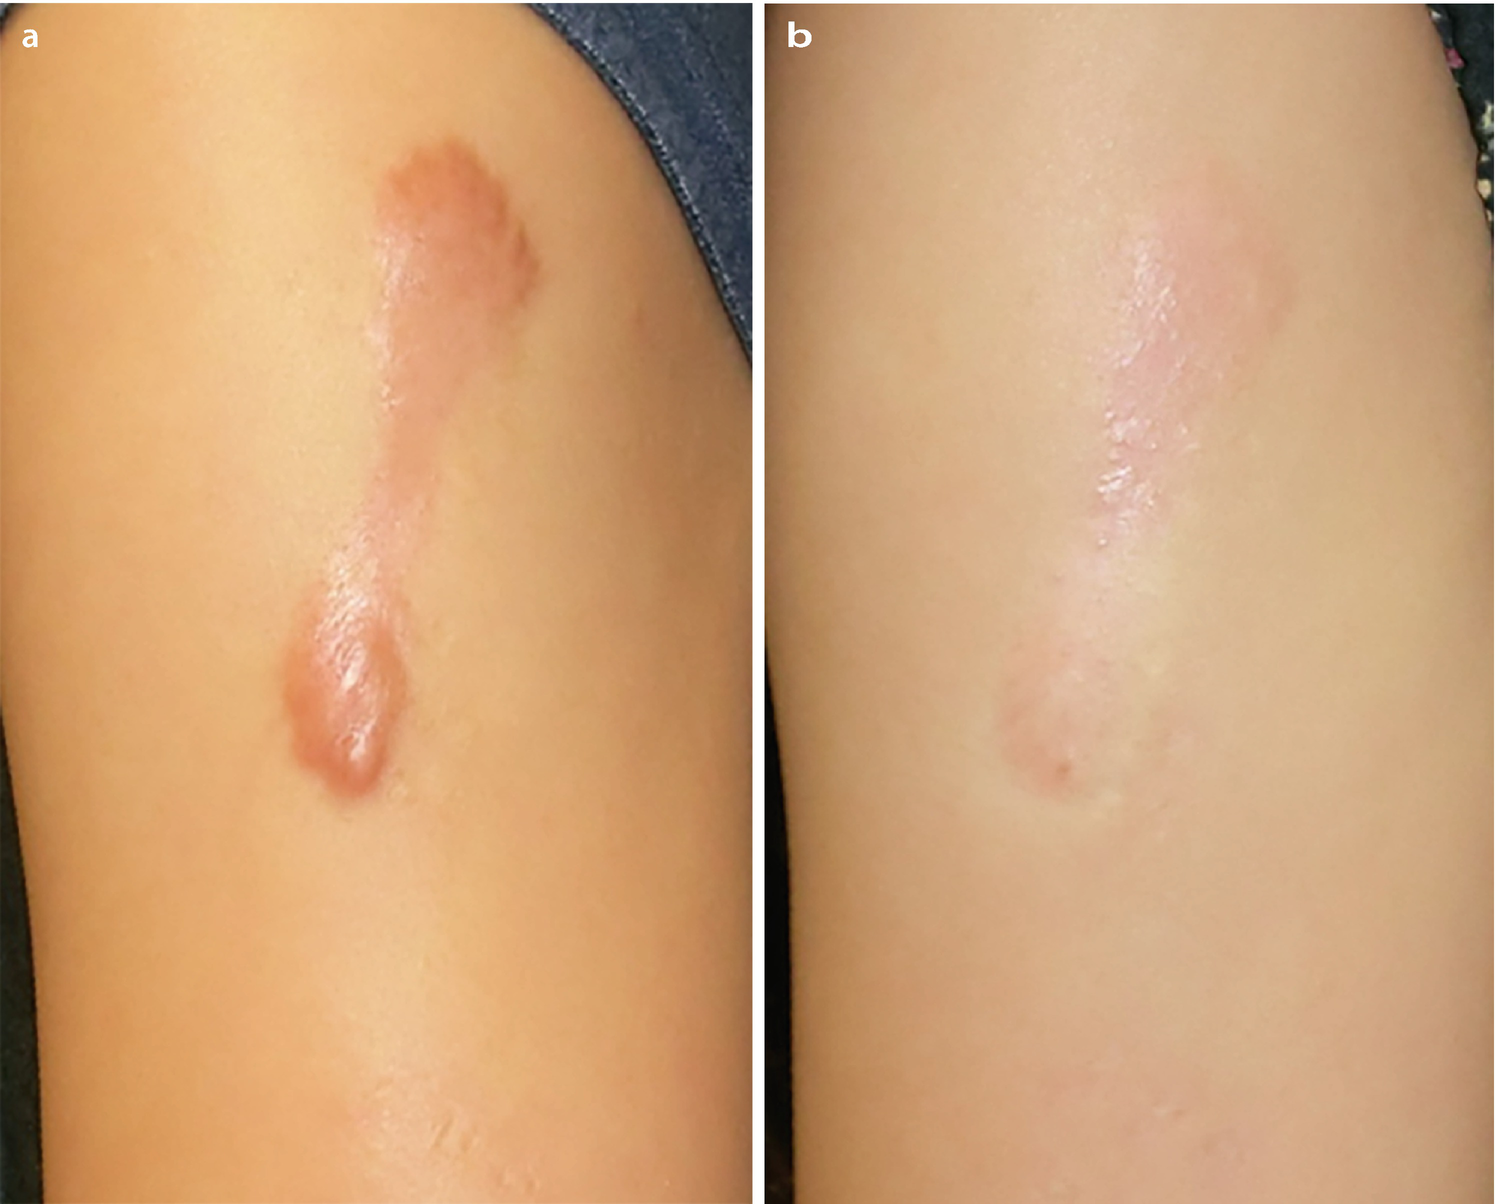 Keloid before and after steroid injection dbol oral steroids side effects